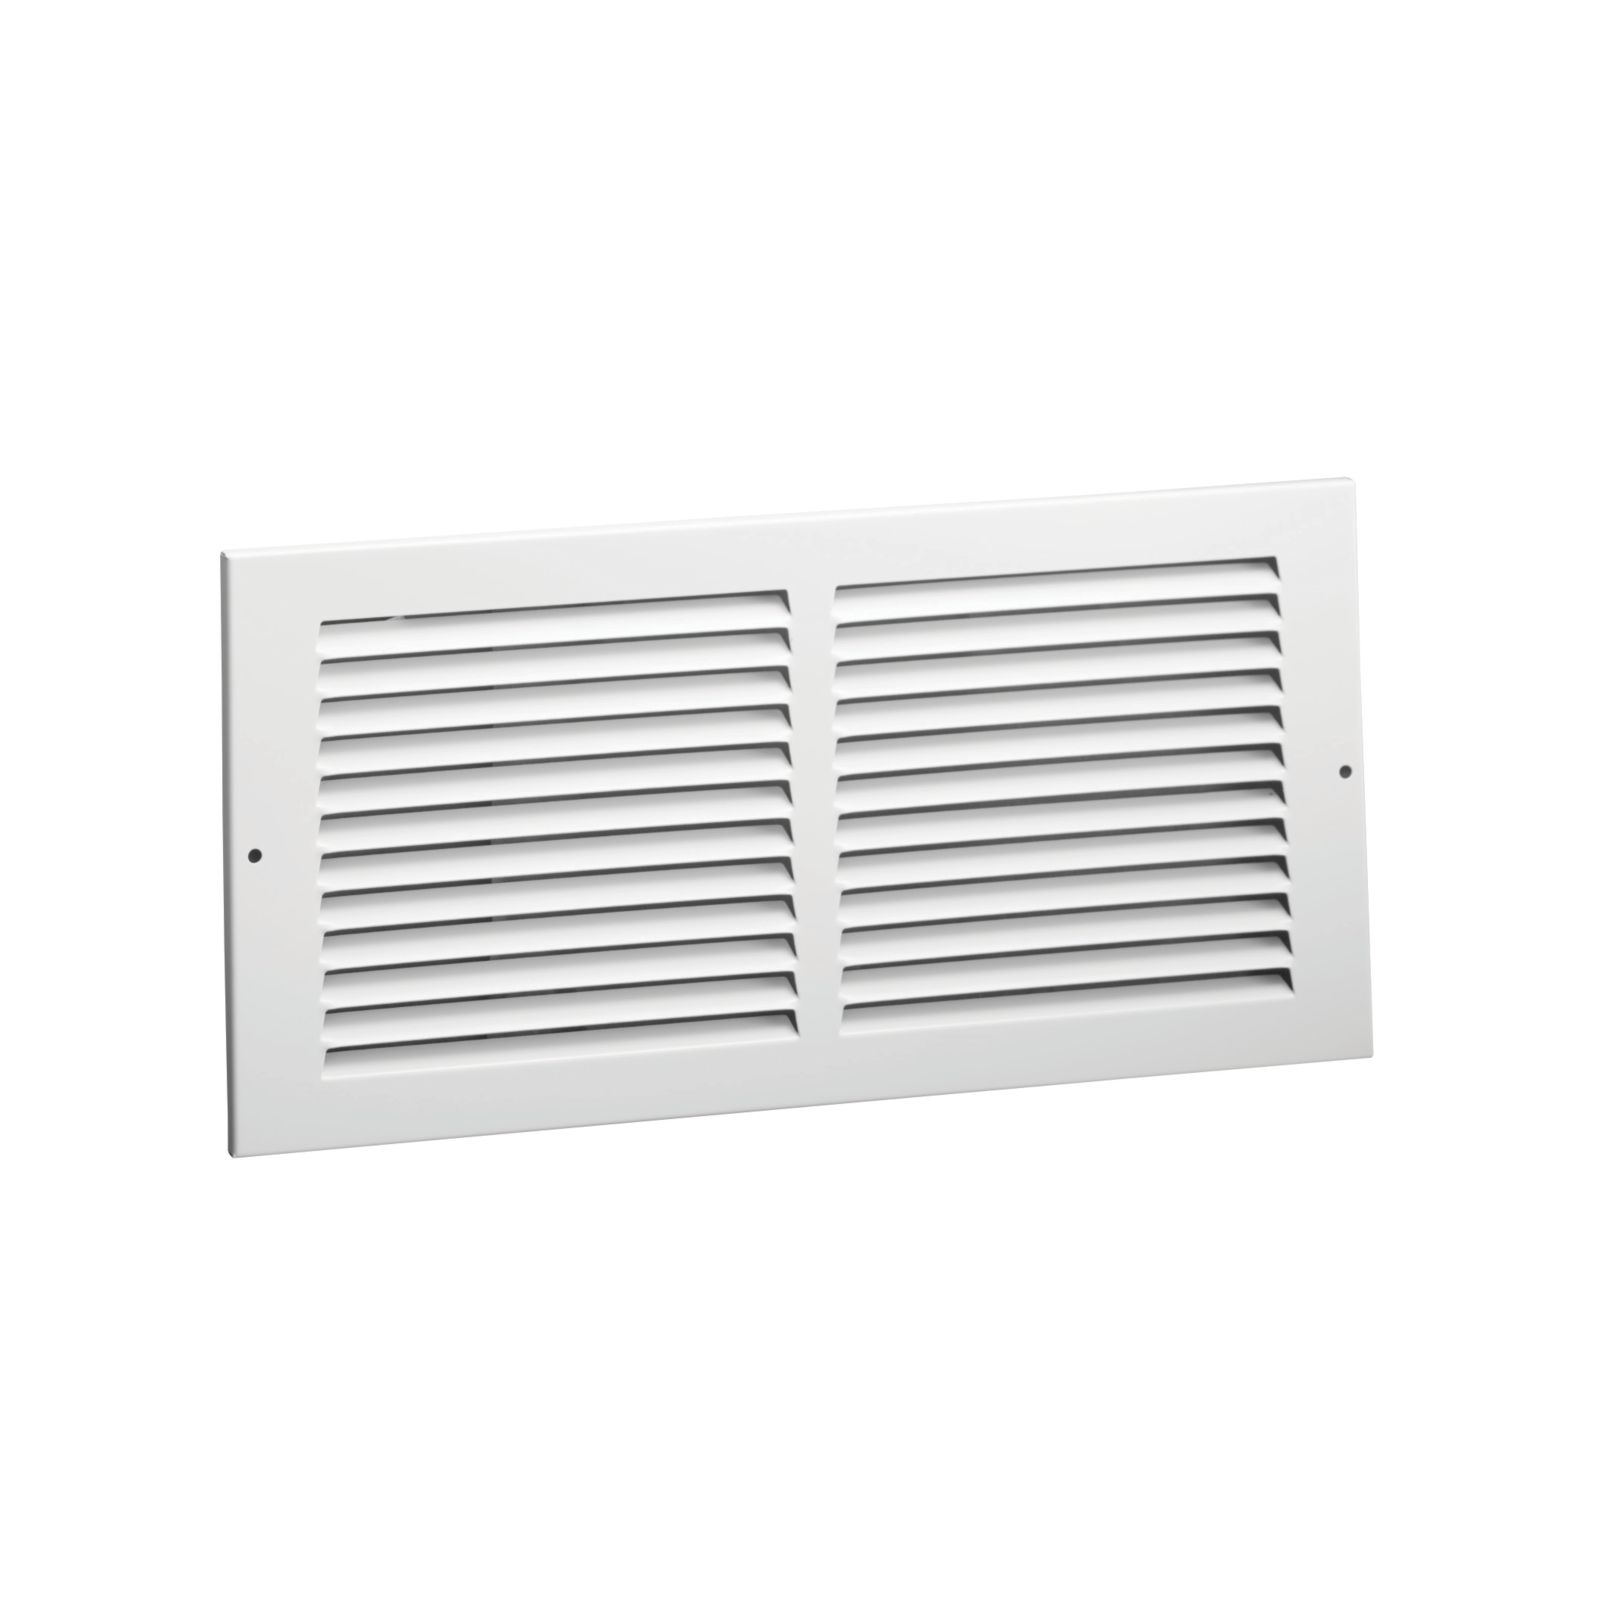 "Hart & Cooley 043335 - #672 Steel Return Air Grille, White Finish, 16"" X 8"""